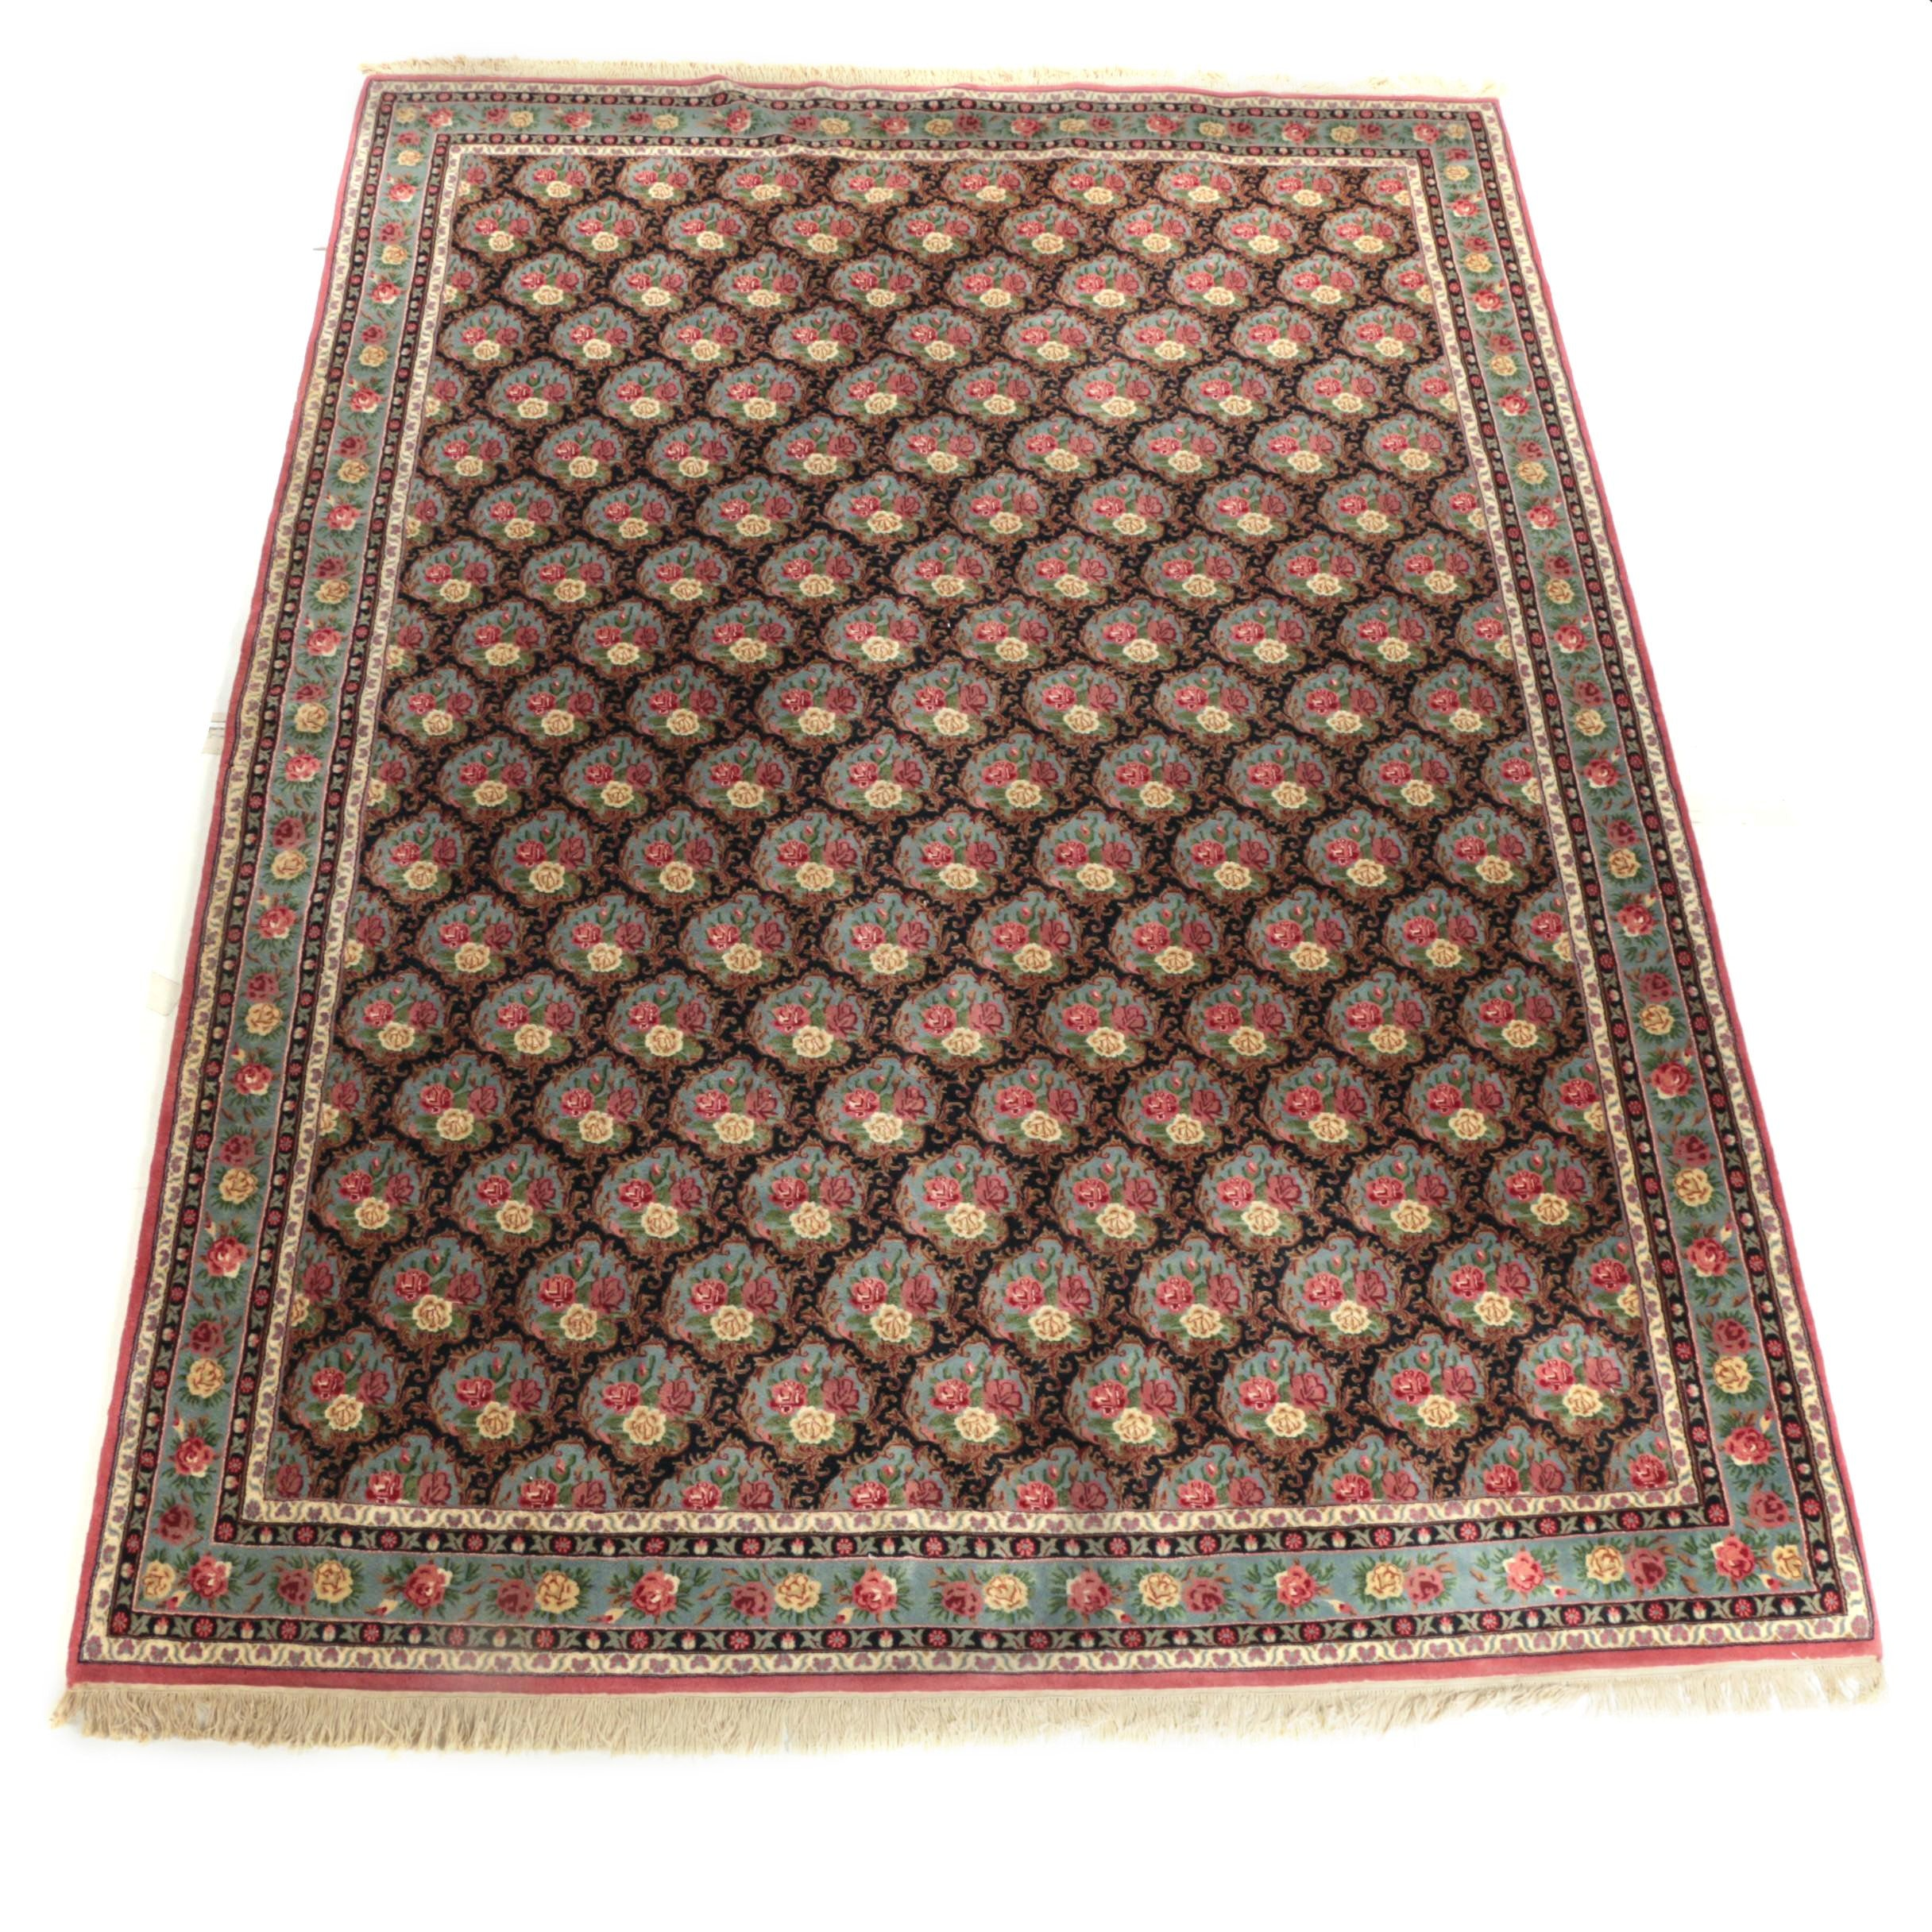 Hand-Knotted Sino-Persian Floral Area Rug